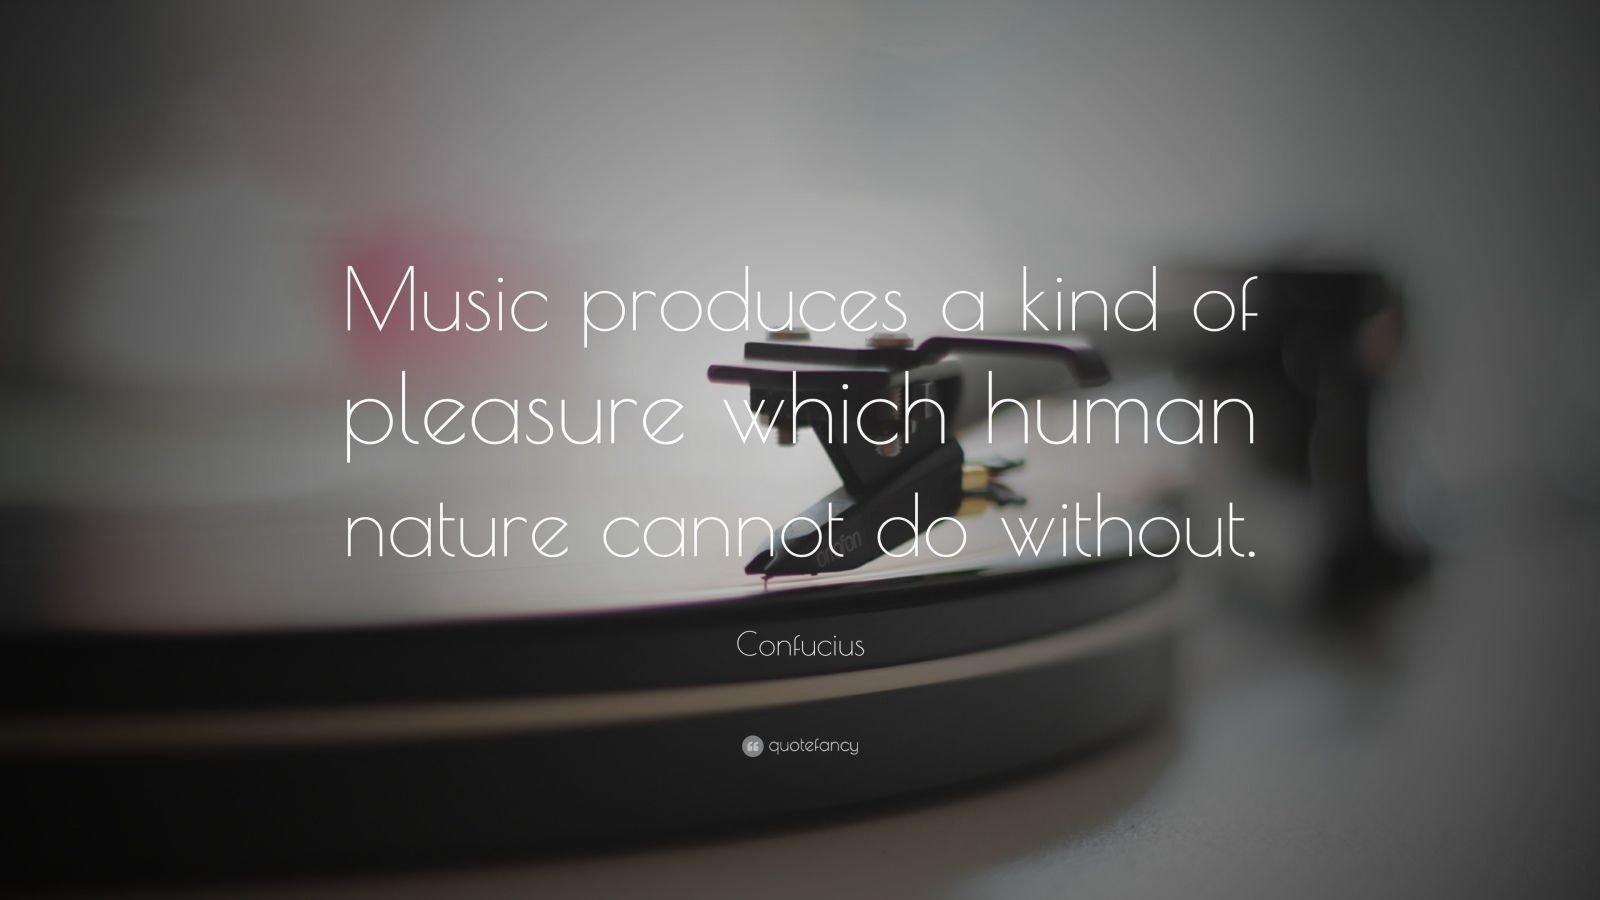 Knowledge Quotes Wallpapers 4k Music Quotes 50 Wallpapers Quotefancy